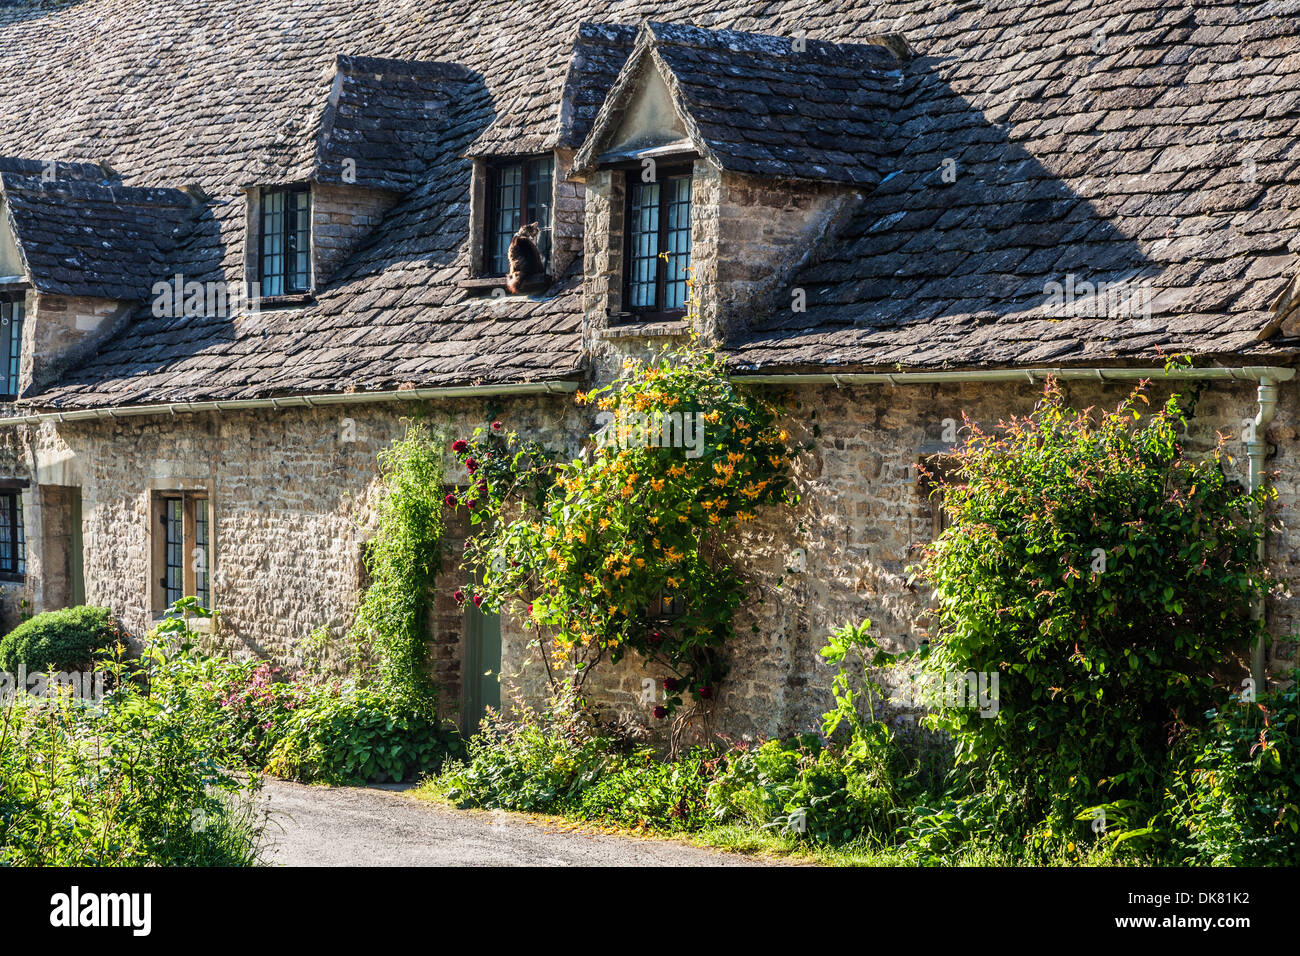 Part of the famous Arlington Row 14th century weavers' cottages in the Cotswold village of Bibury. - Stock Image